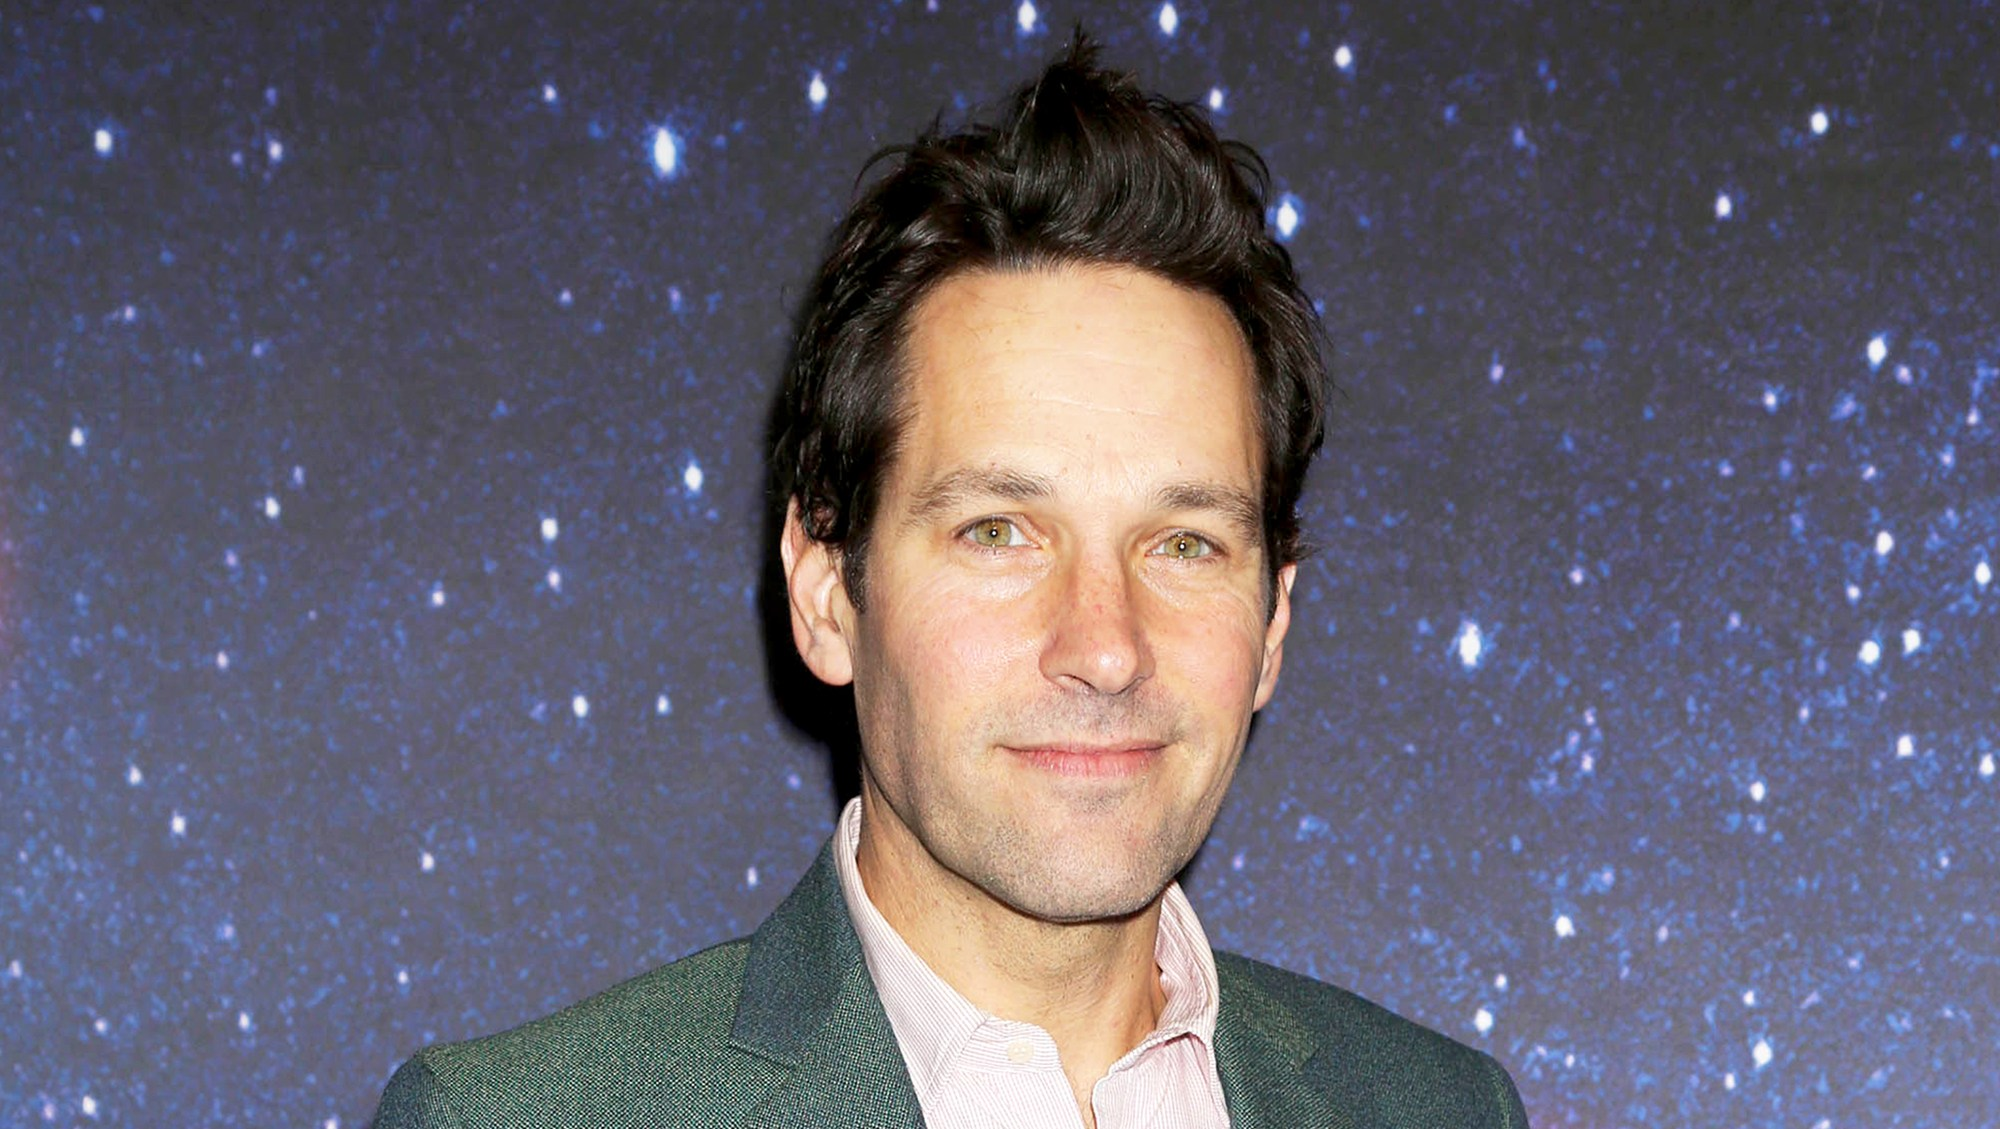 Paul Rudd attends the 2017 'Meteor Shower' Broadway Opening Night at the Booth Theatre in New York City.